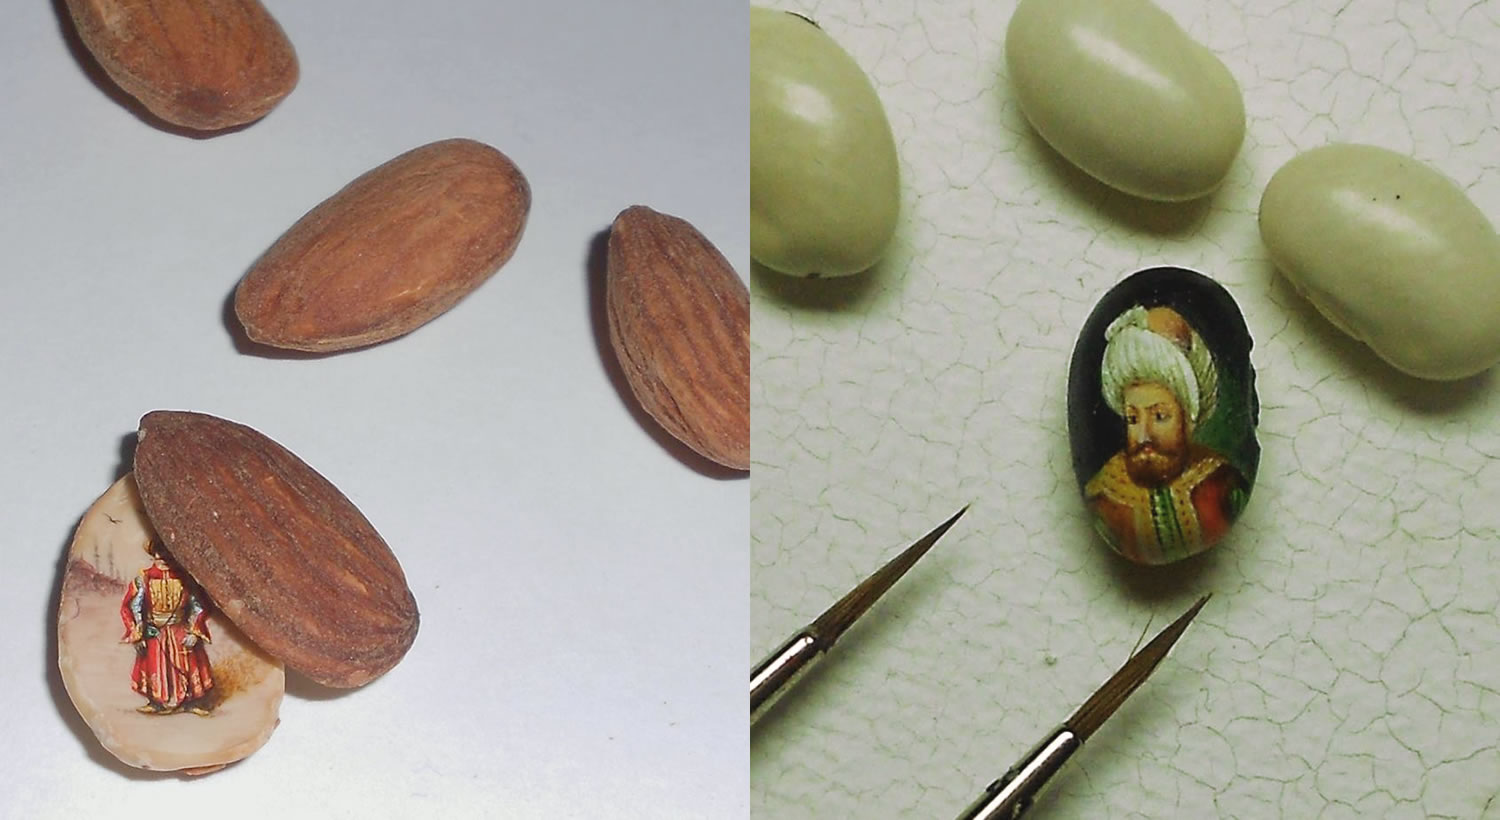 micro paintings on almond and green bean, by Hasan Kale